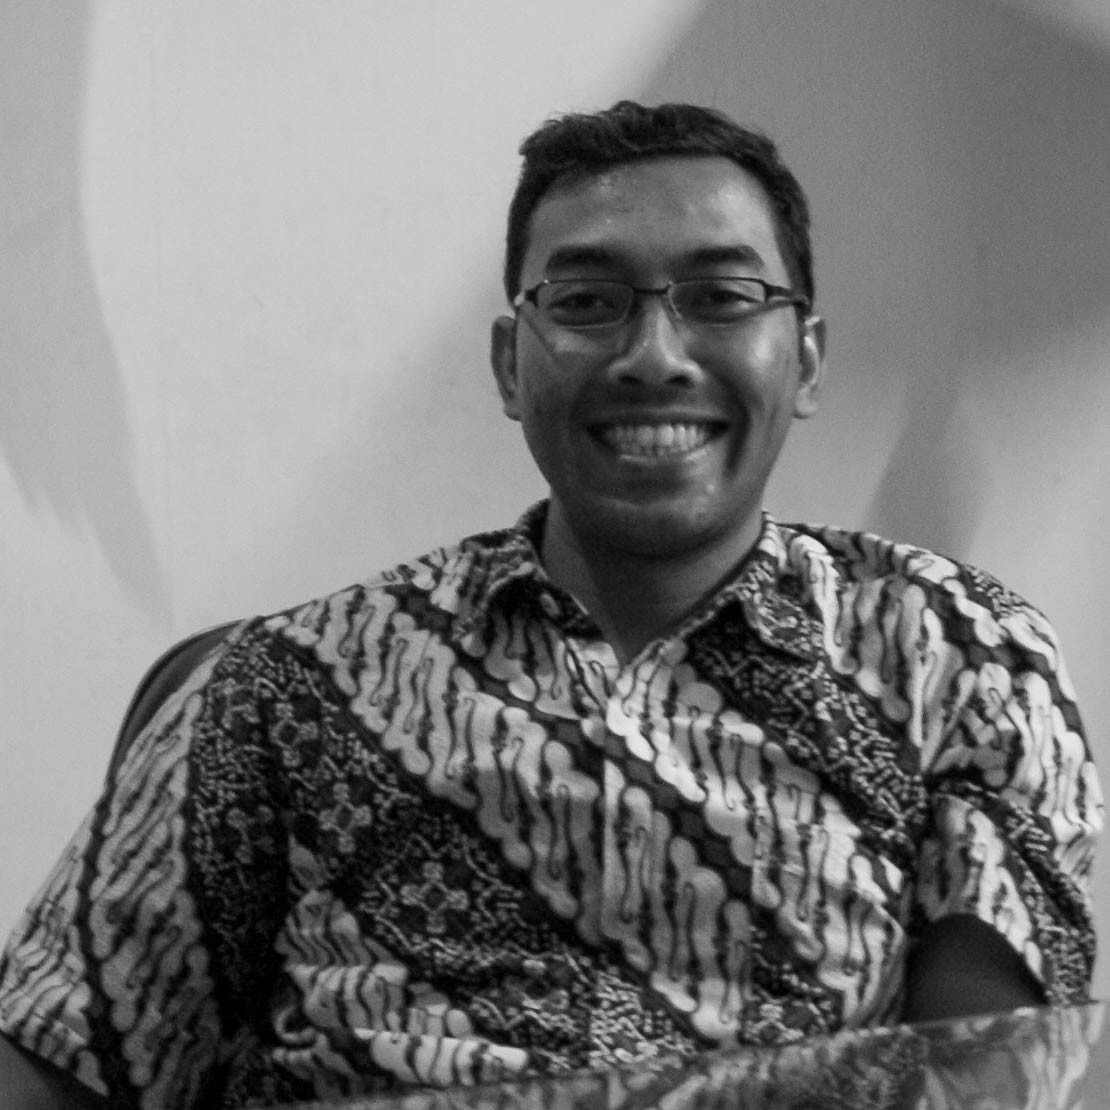 WICAKSONO & PARTNERS halimnanang-firmprofile-1 OUR PEOPLE